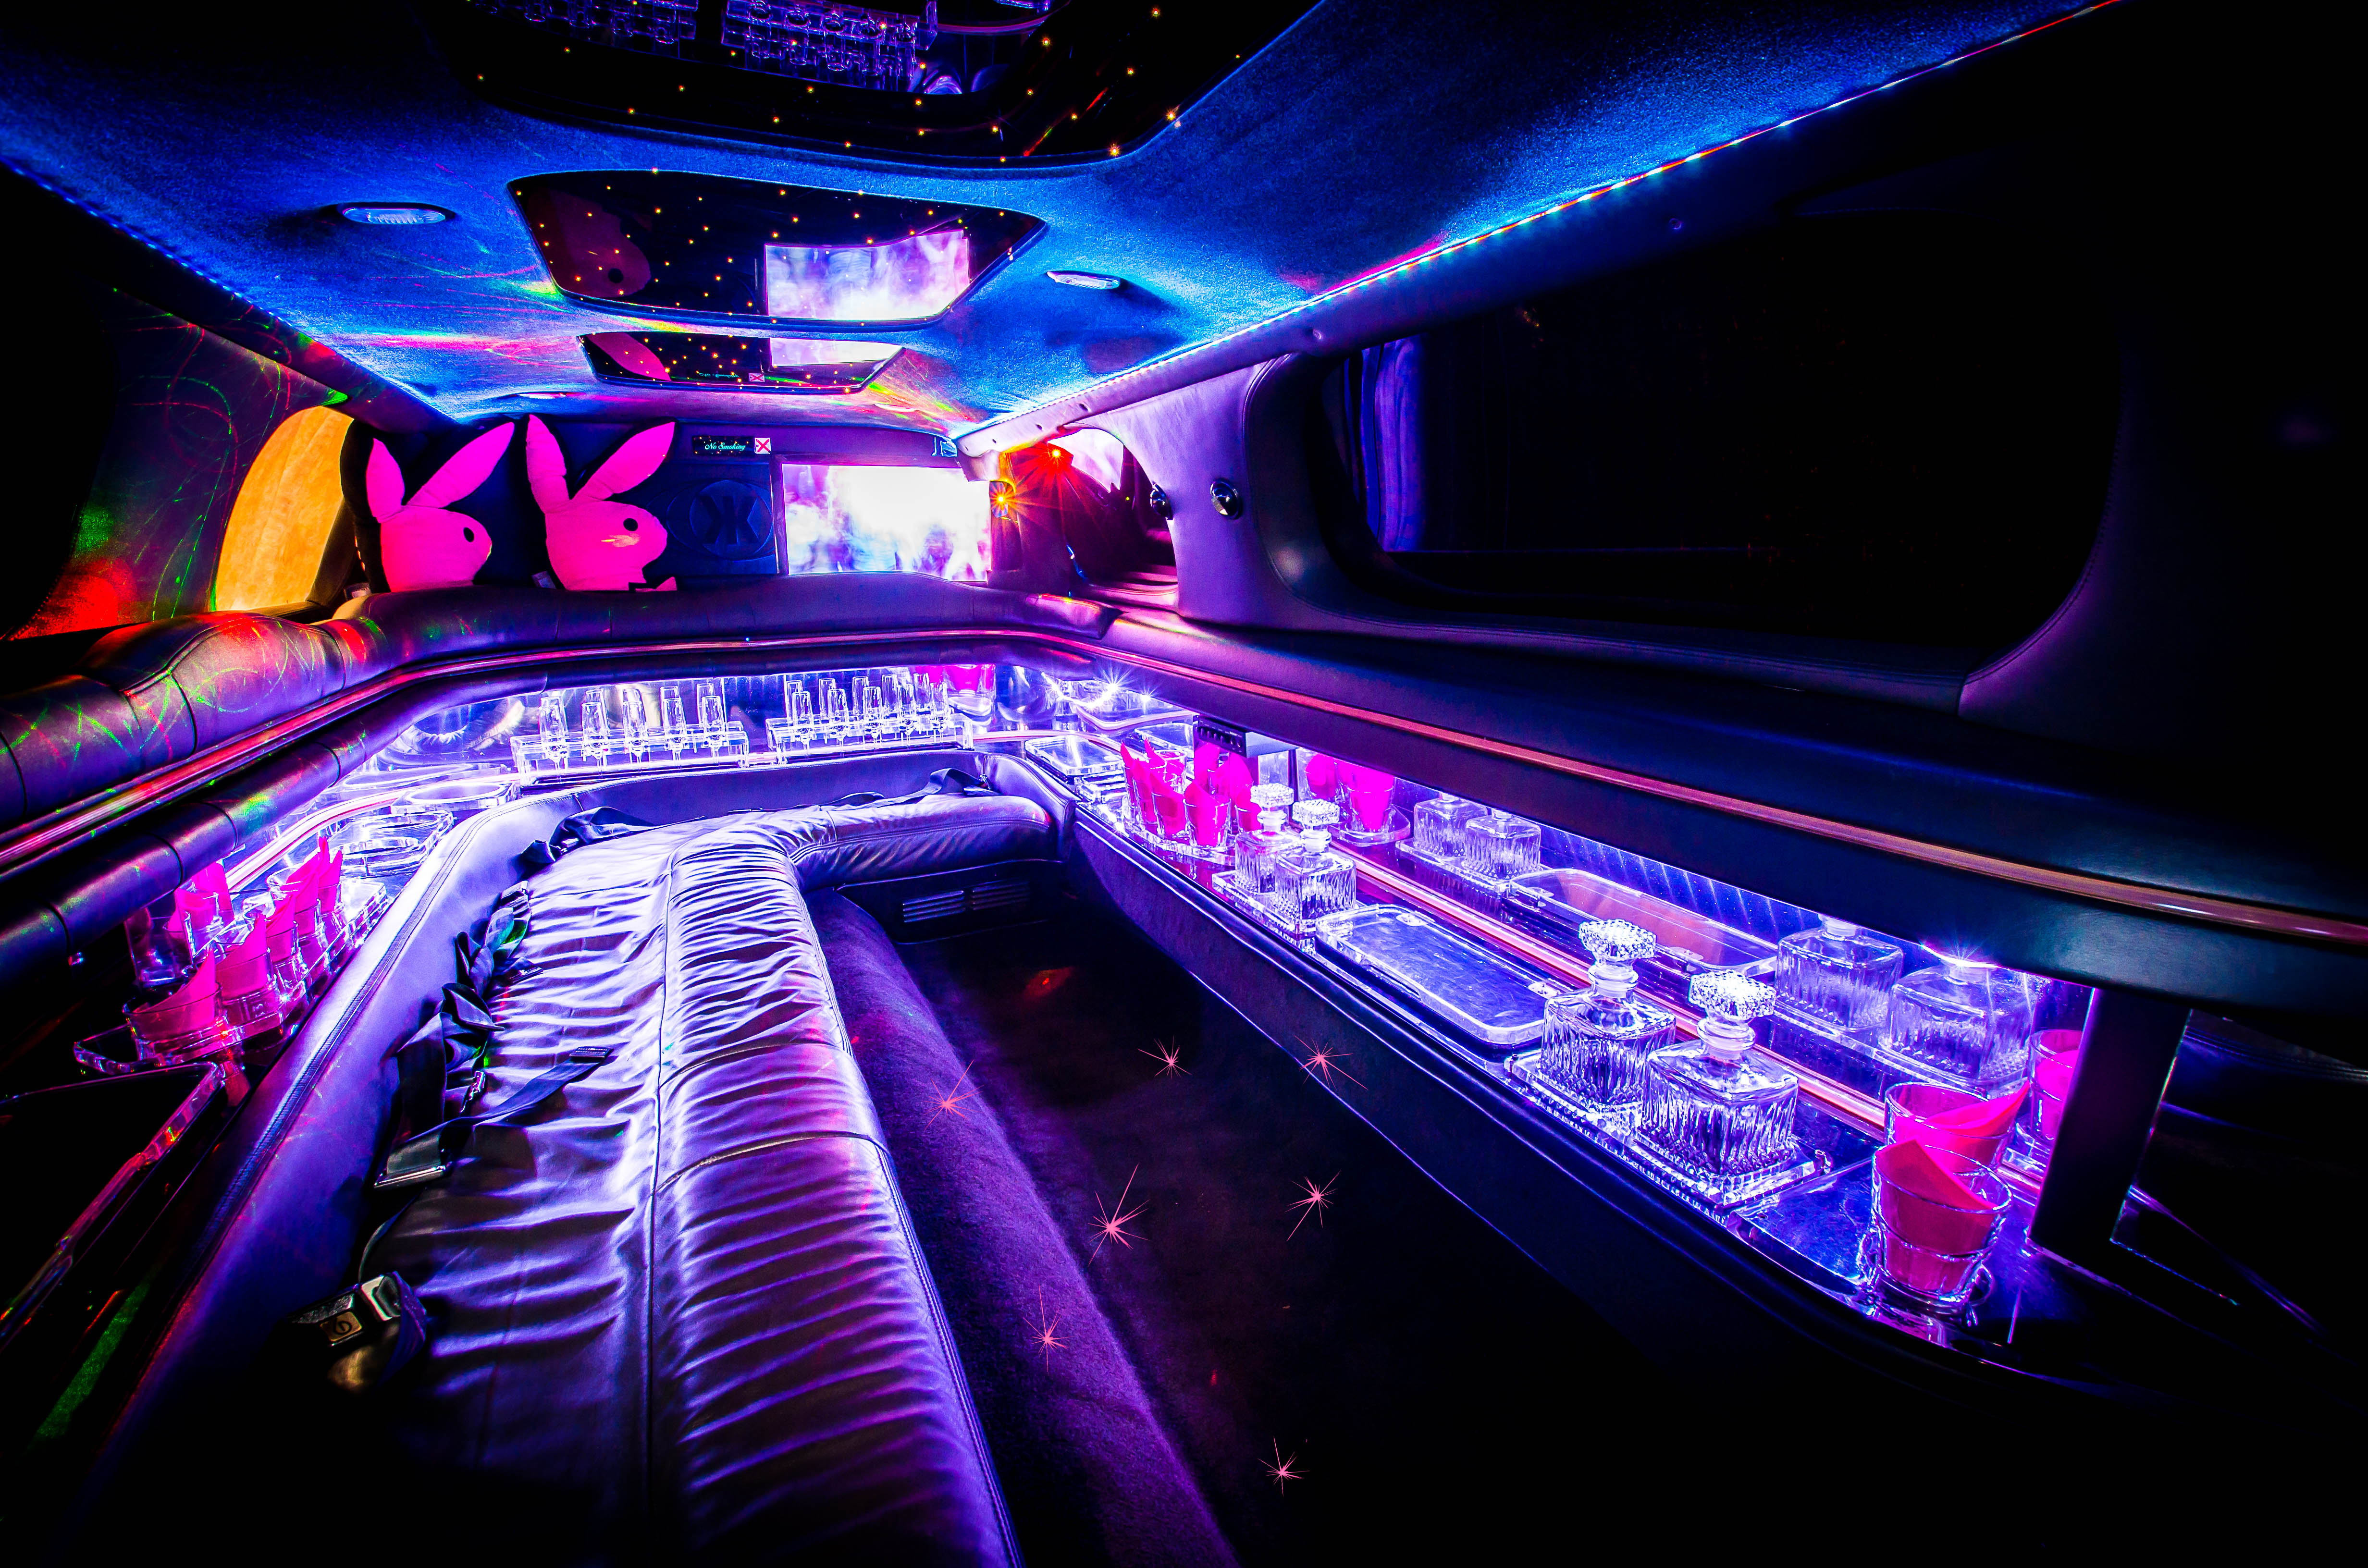 Limo-pink-Innenraum-Moonshine-Stretchlimousine-mit-Chauffeur